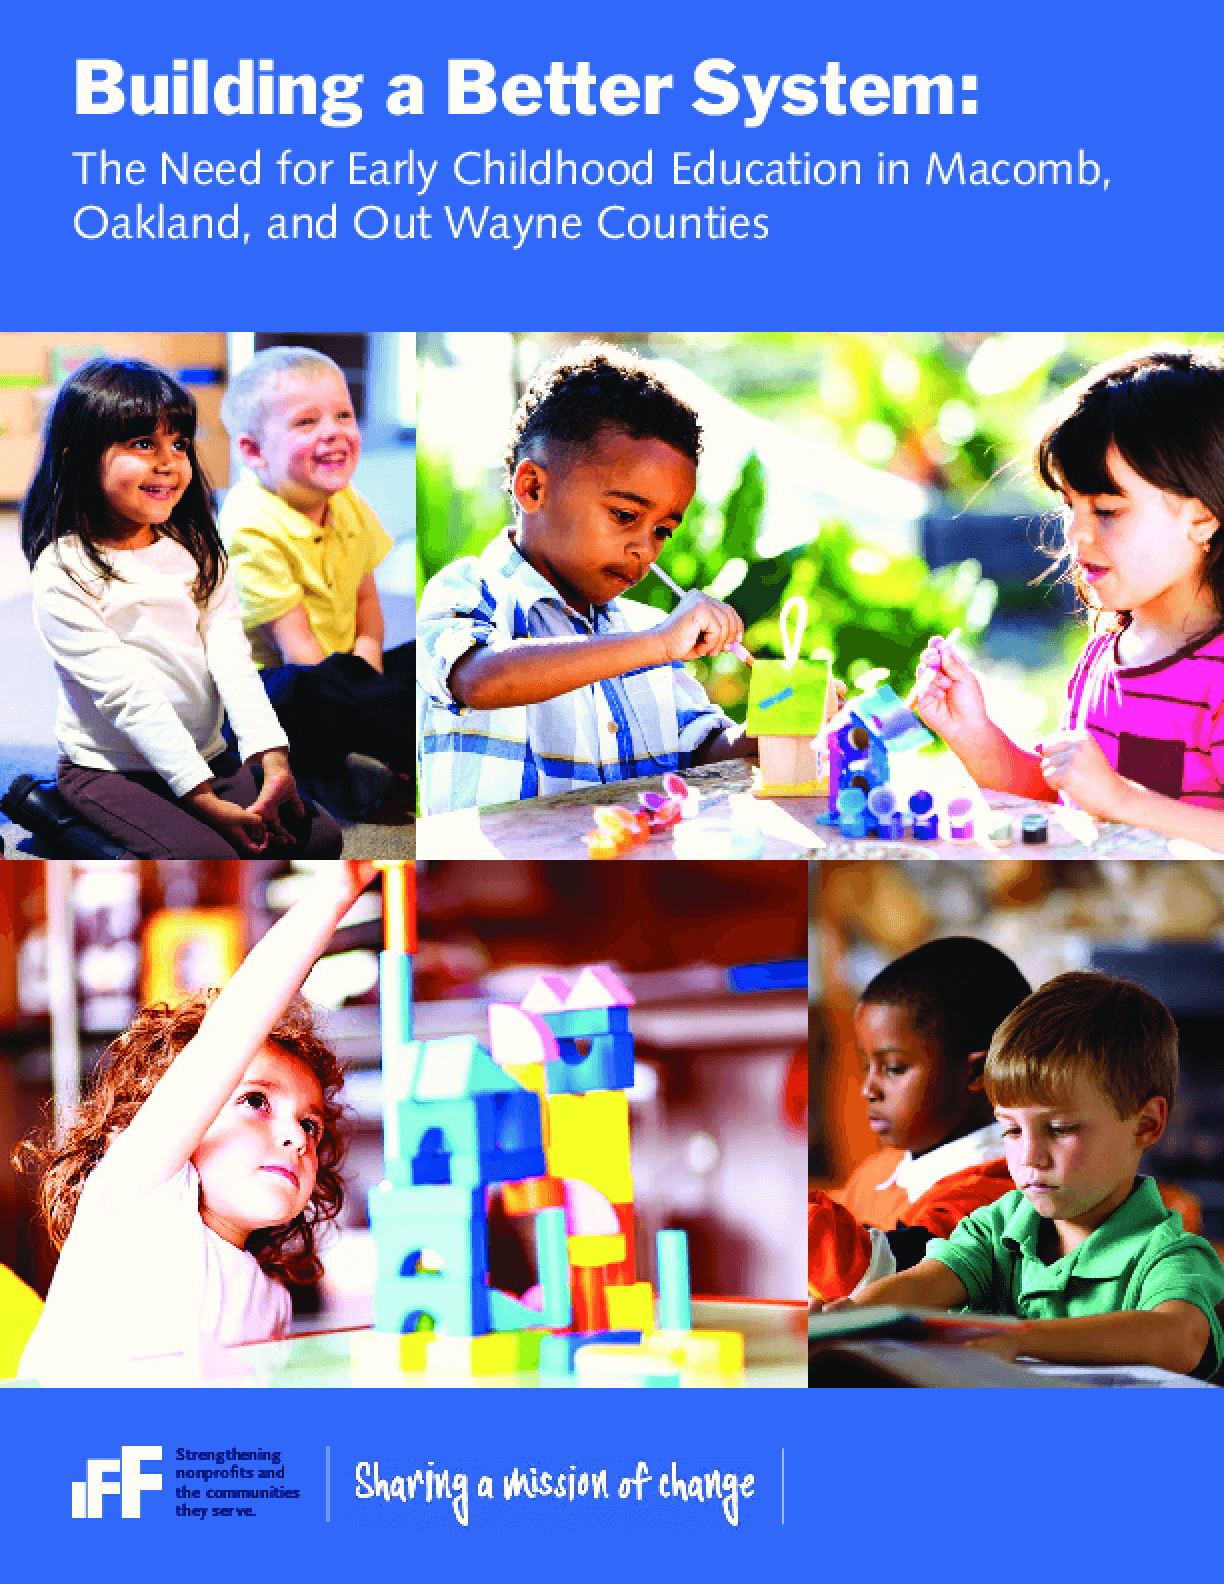 Building a Better System: the Need for Early Childhood Education in Macomb, Oakland, and Out Wayne Counties